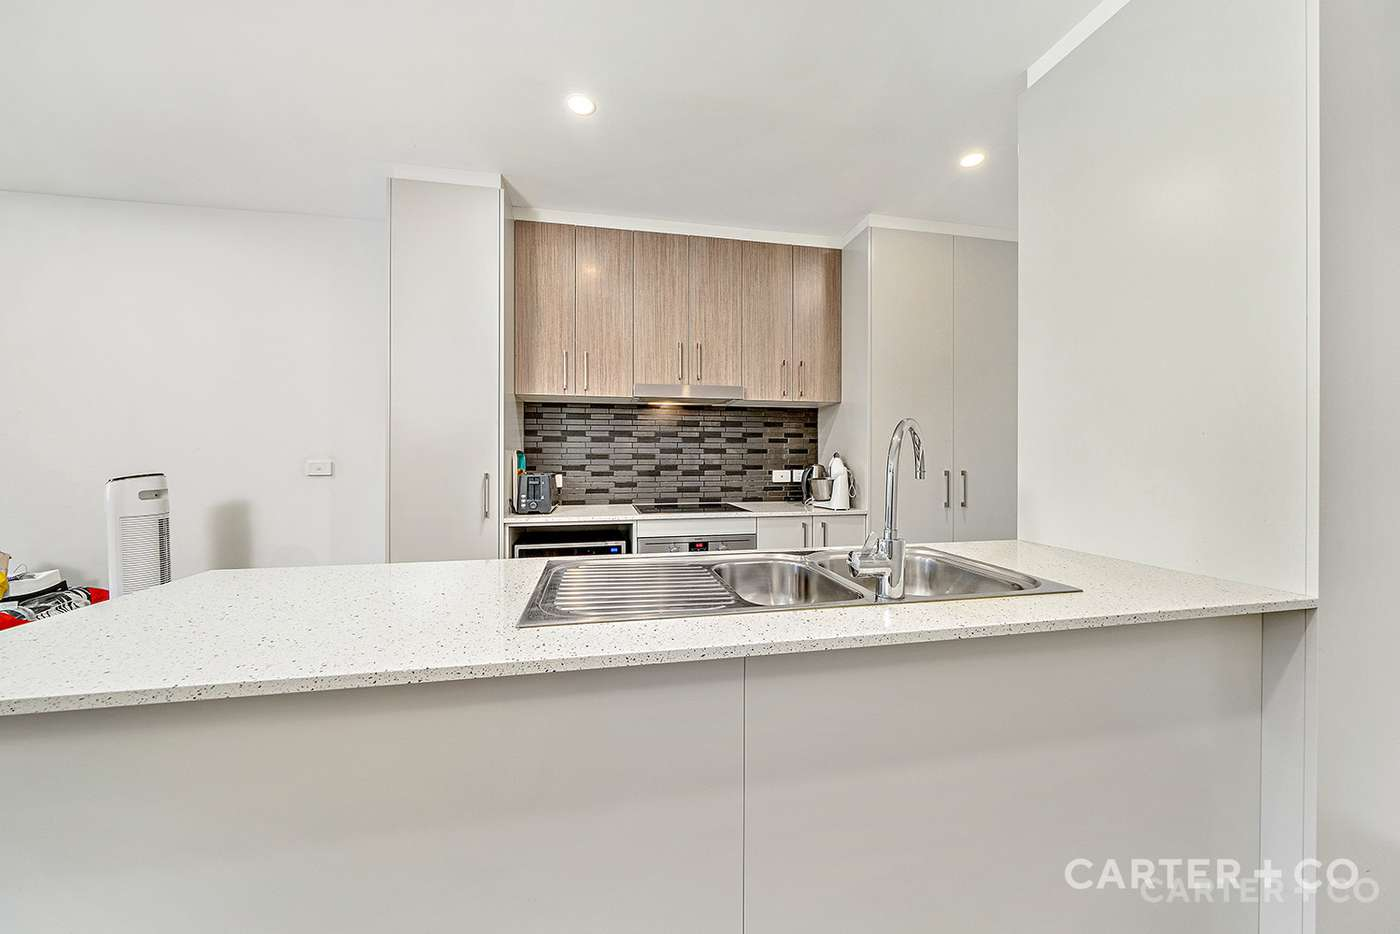 Main view of Homely apartment listing, 15/111 Canberra Avenue, Griffith ACT 2603